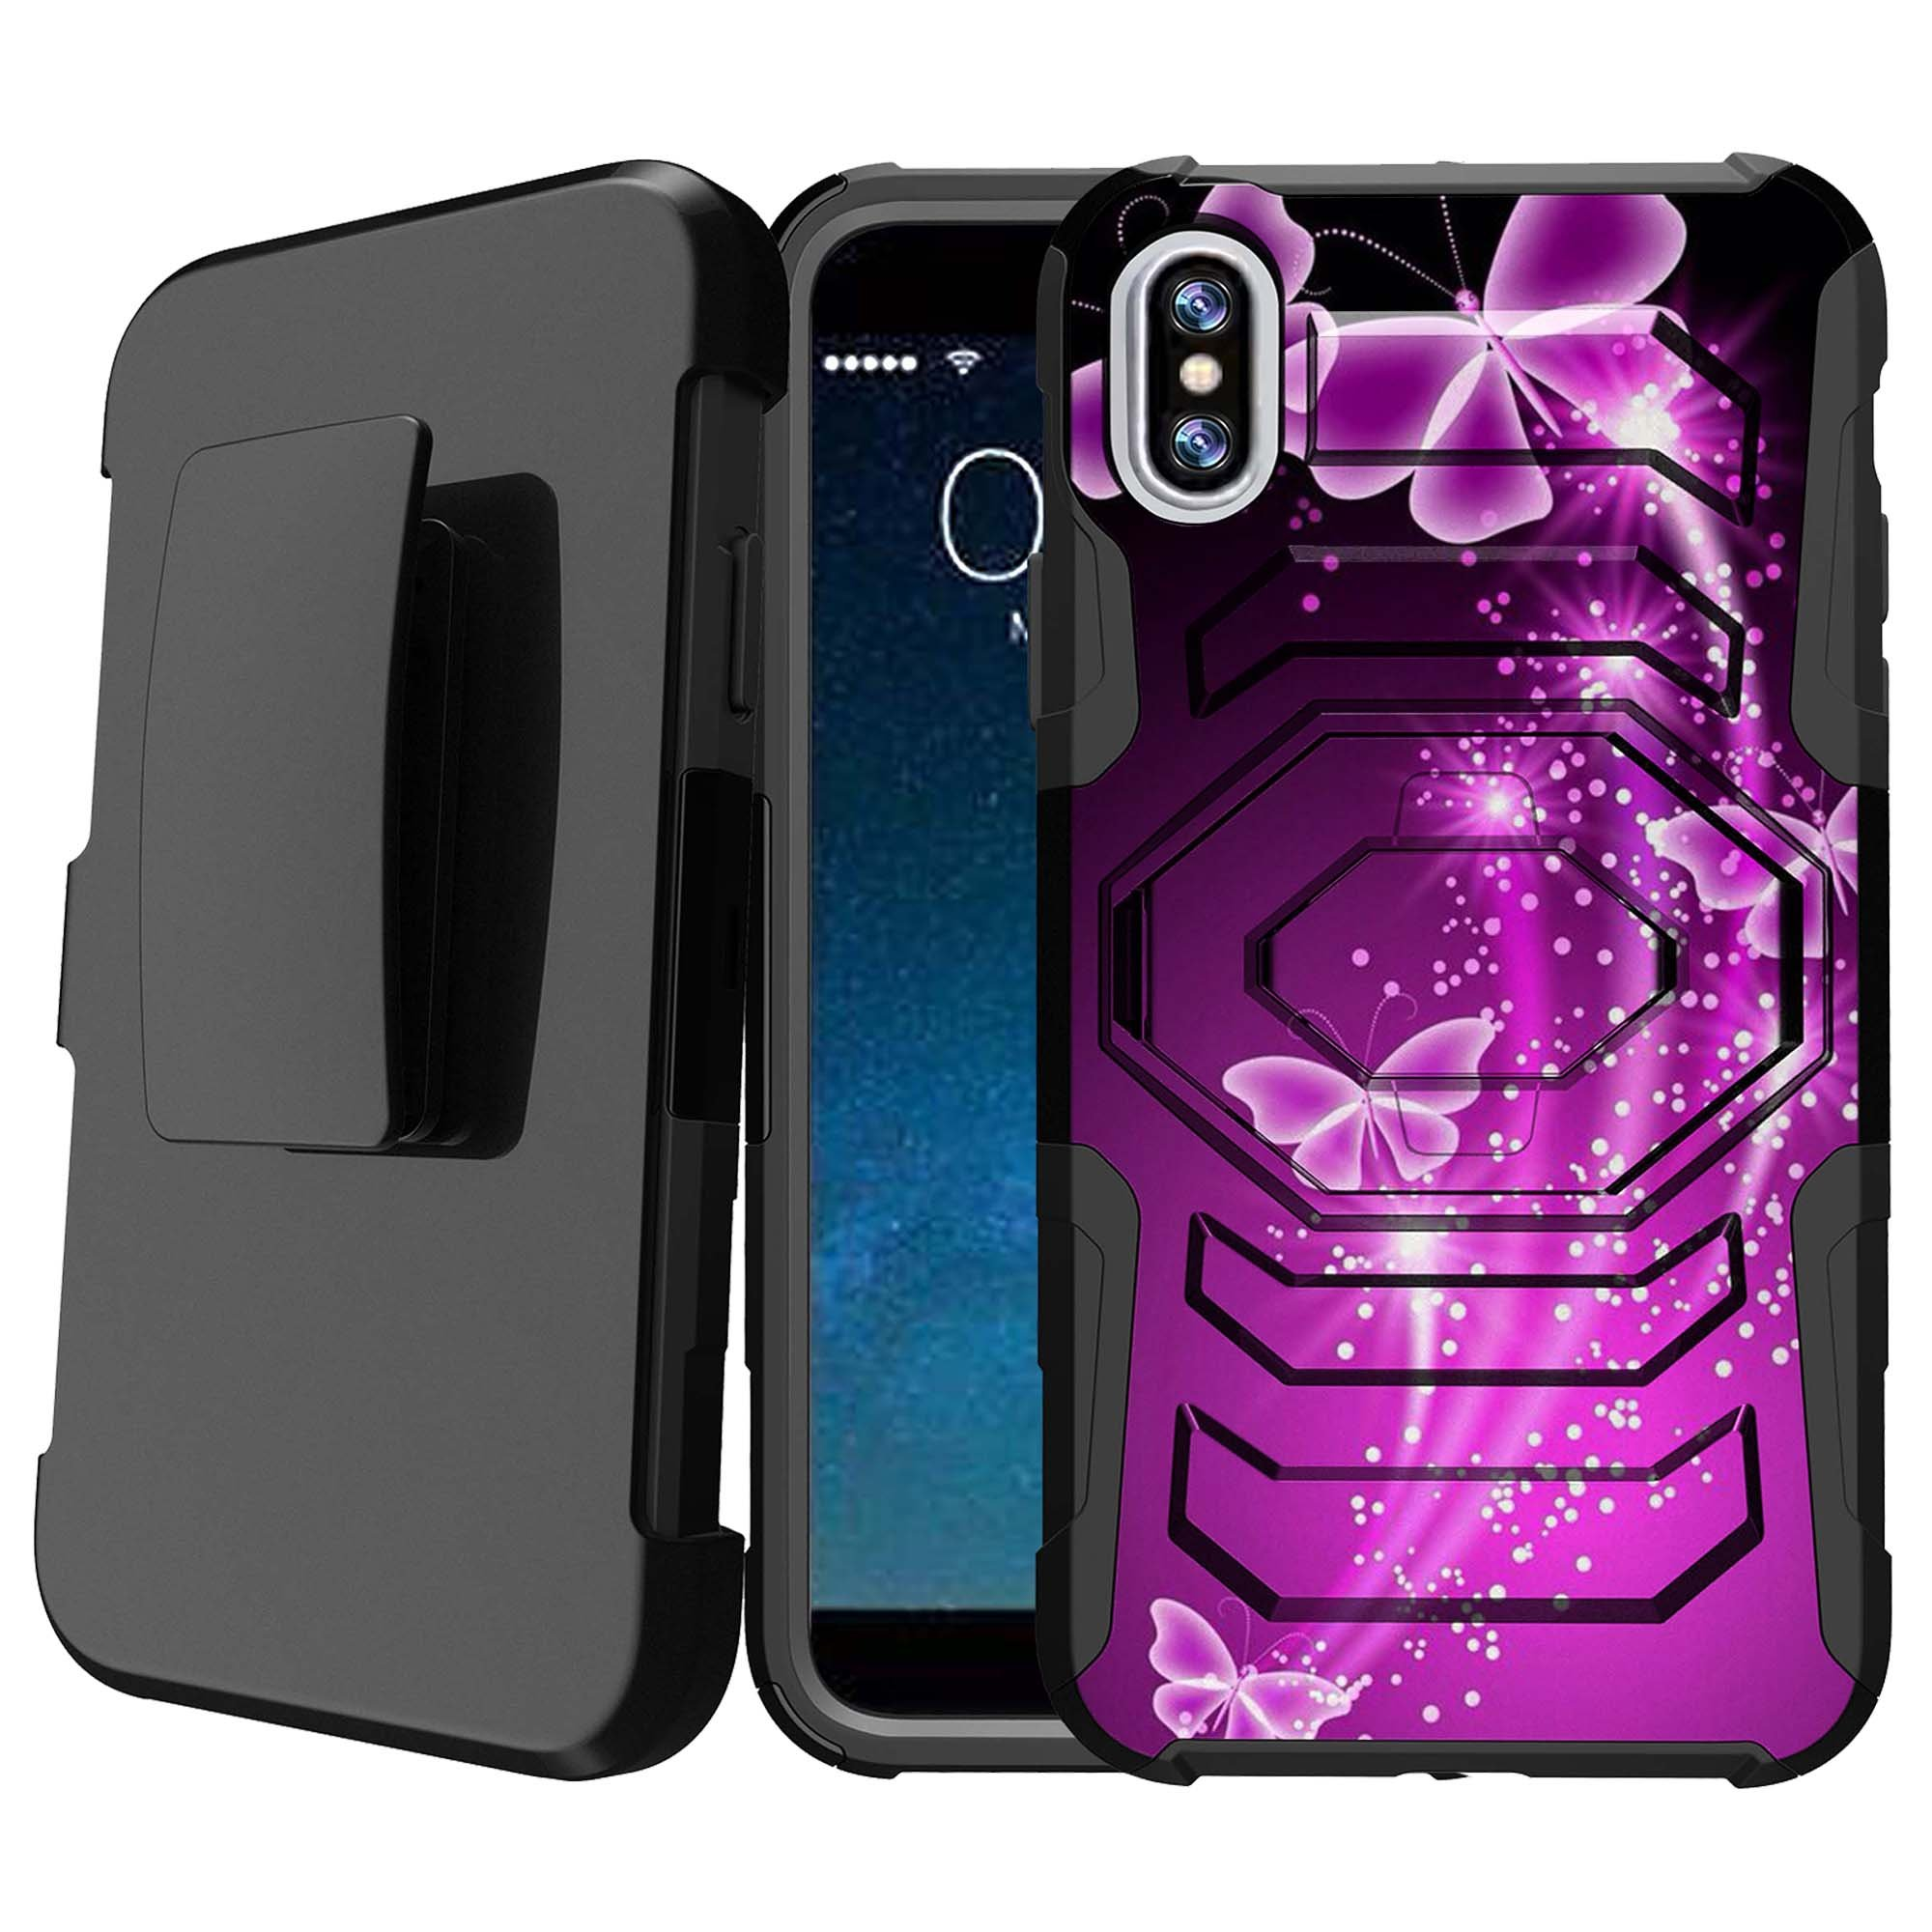 Apple iPhone X Scratch-Resistant Case [Armor Reloaded for iPhone X] Hard-Impact Rugged Swivel Impact Holster Case for iPhone X w/ Locking Kickstand Feature - Hot Purple Butterfly